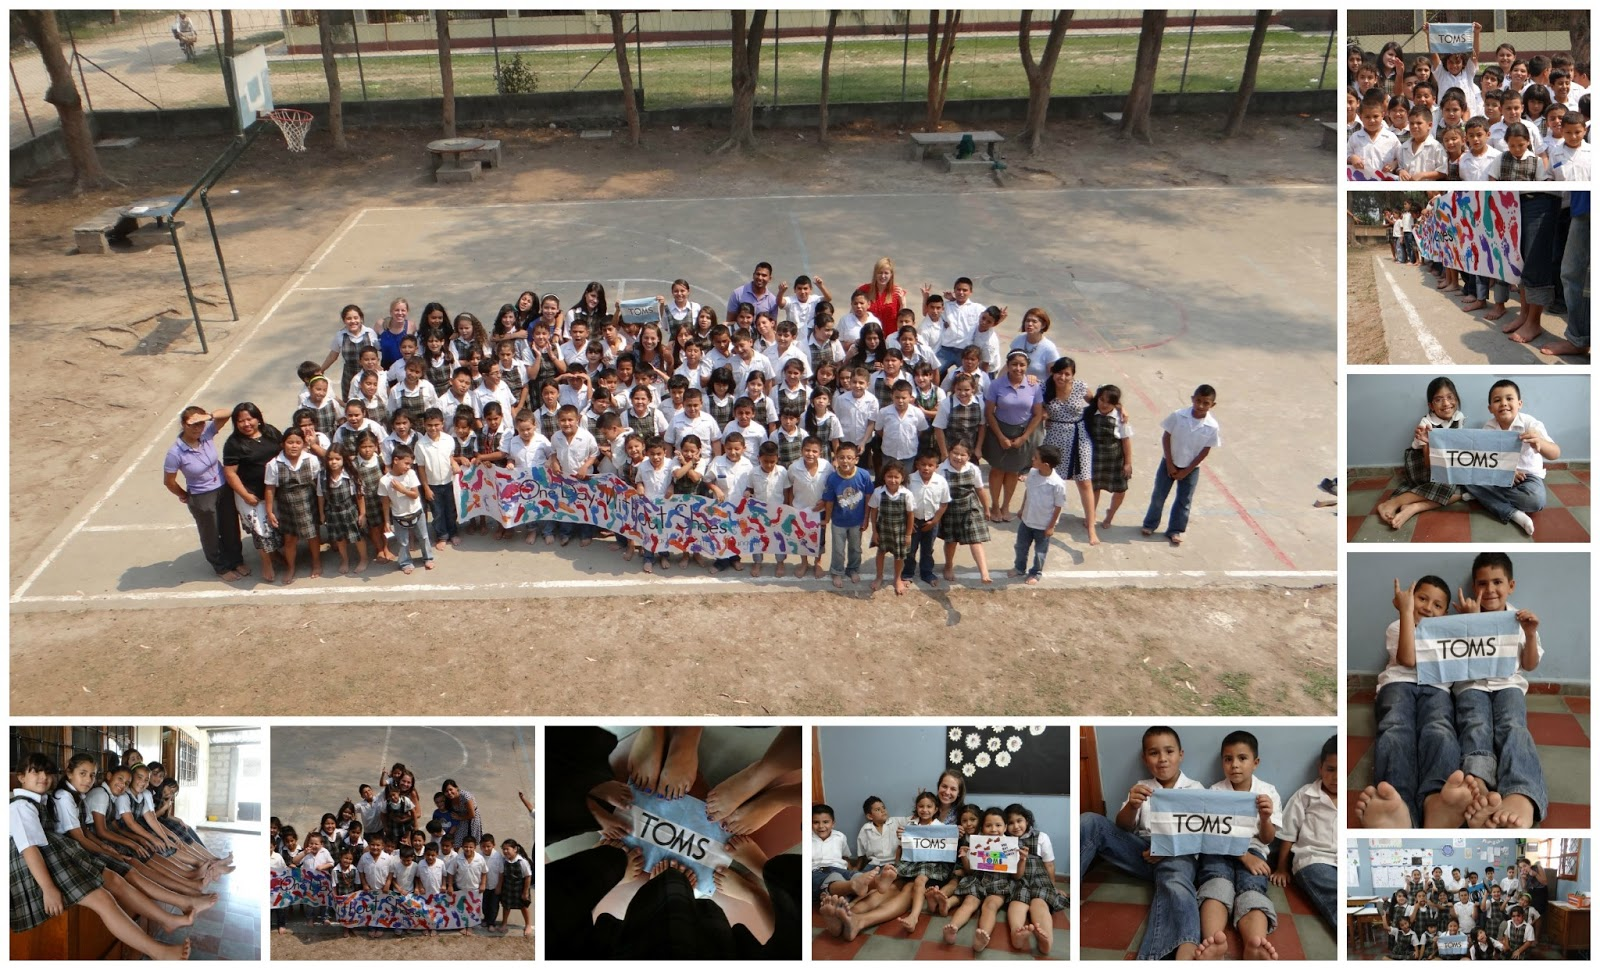 d0a4b769827 I love TOMS shoes. I love One Day Without Shoes. I love sharing this love  with my students. So for the second year in a row (you can ...